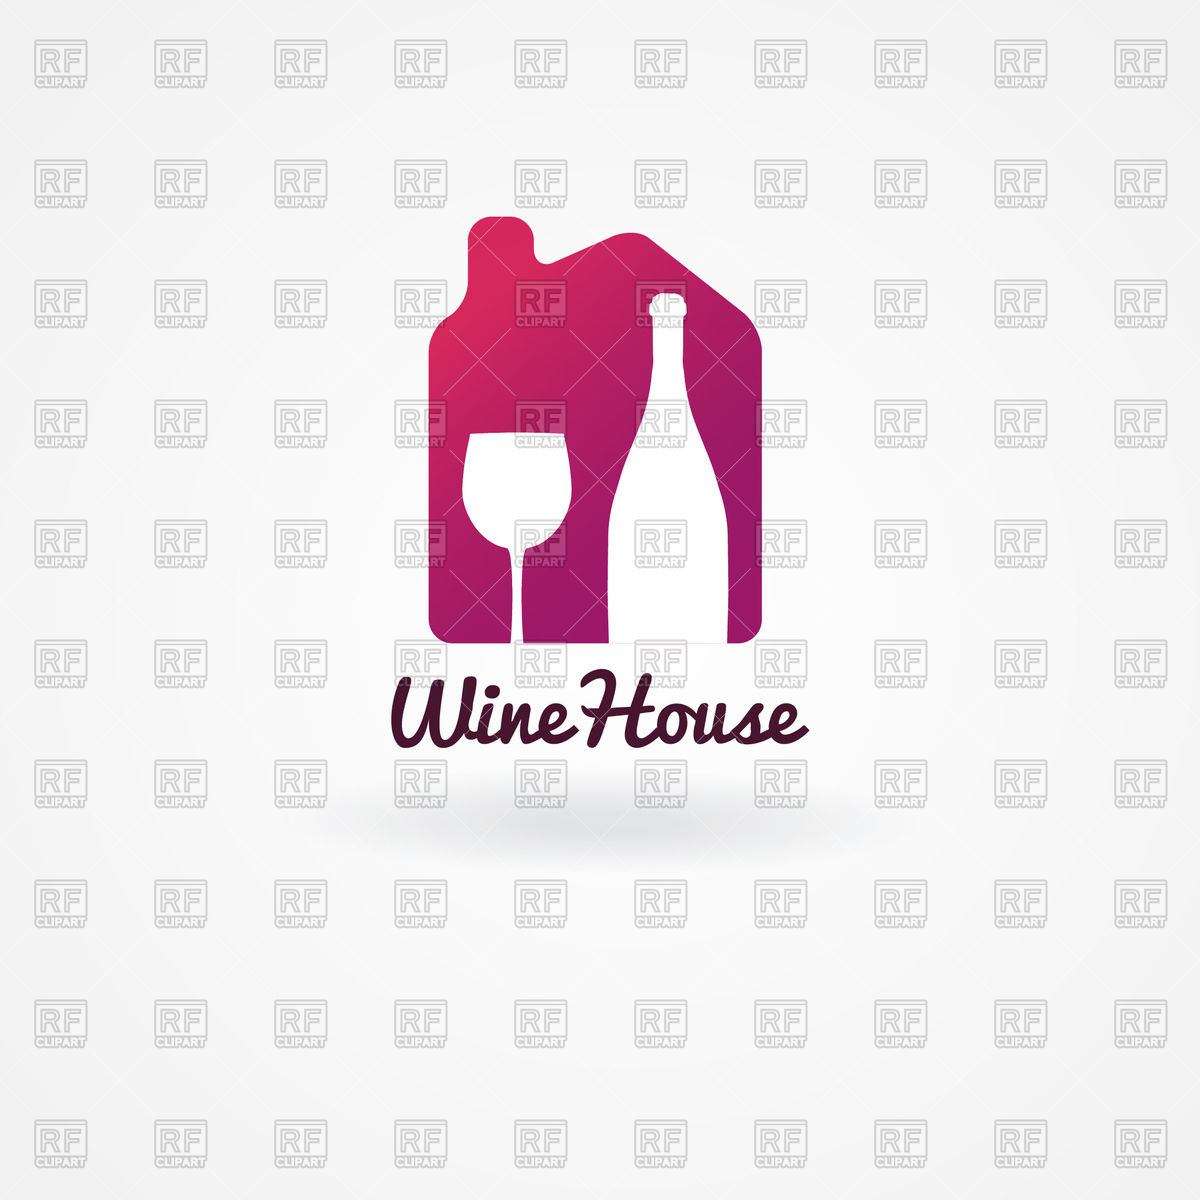 Winery or wine house icon Vector Image #80185.